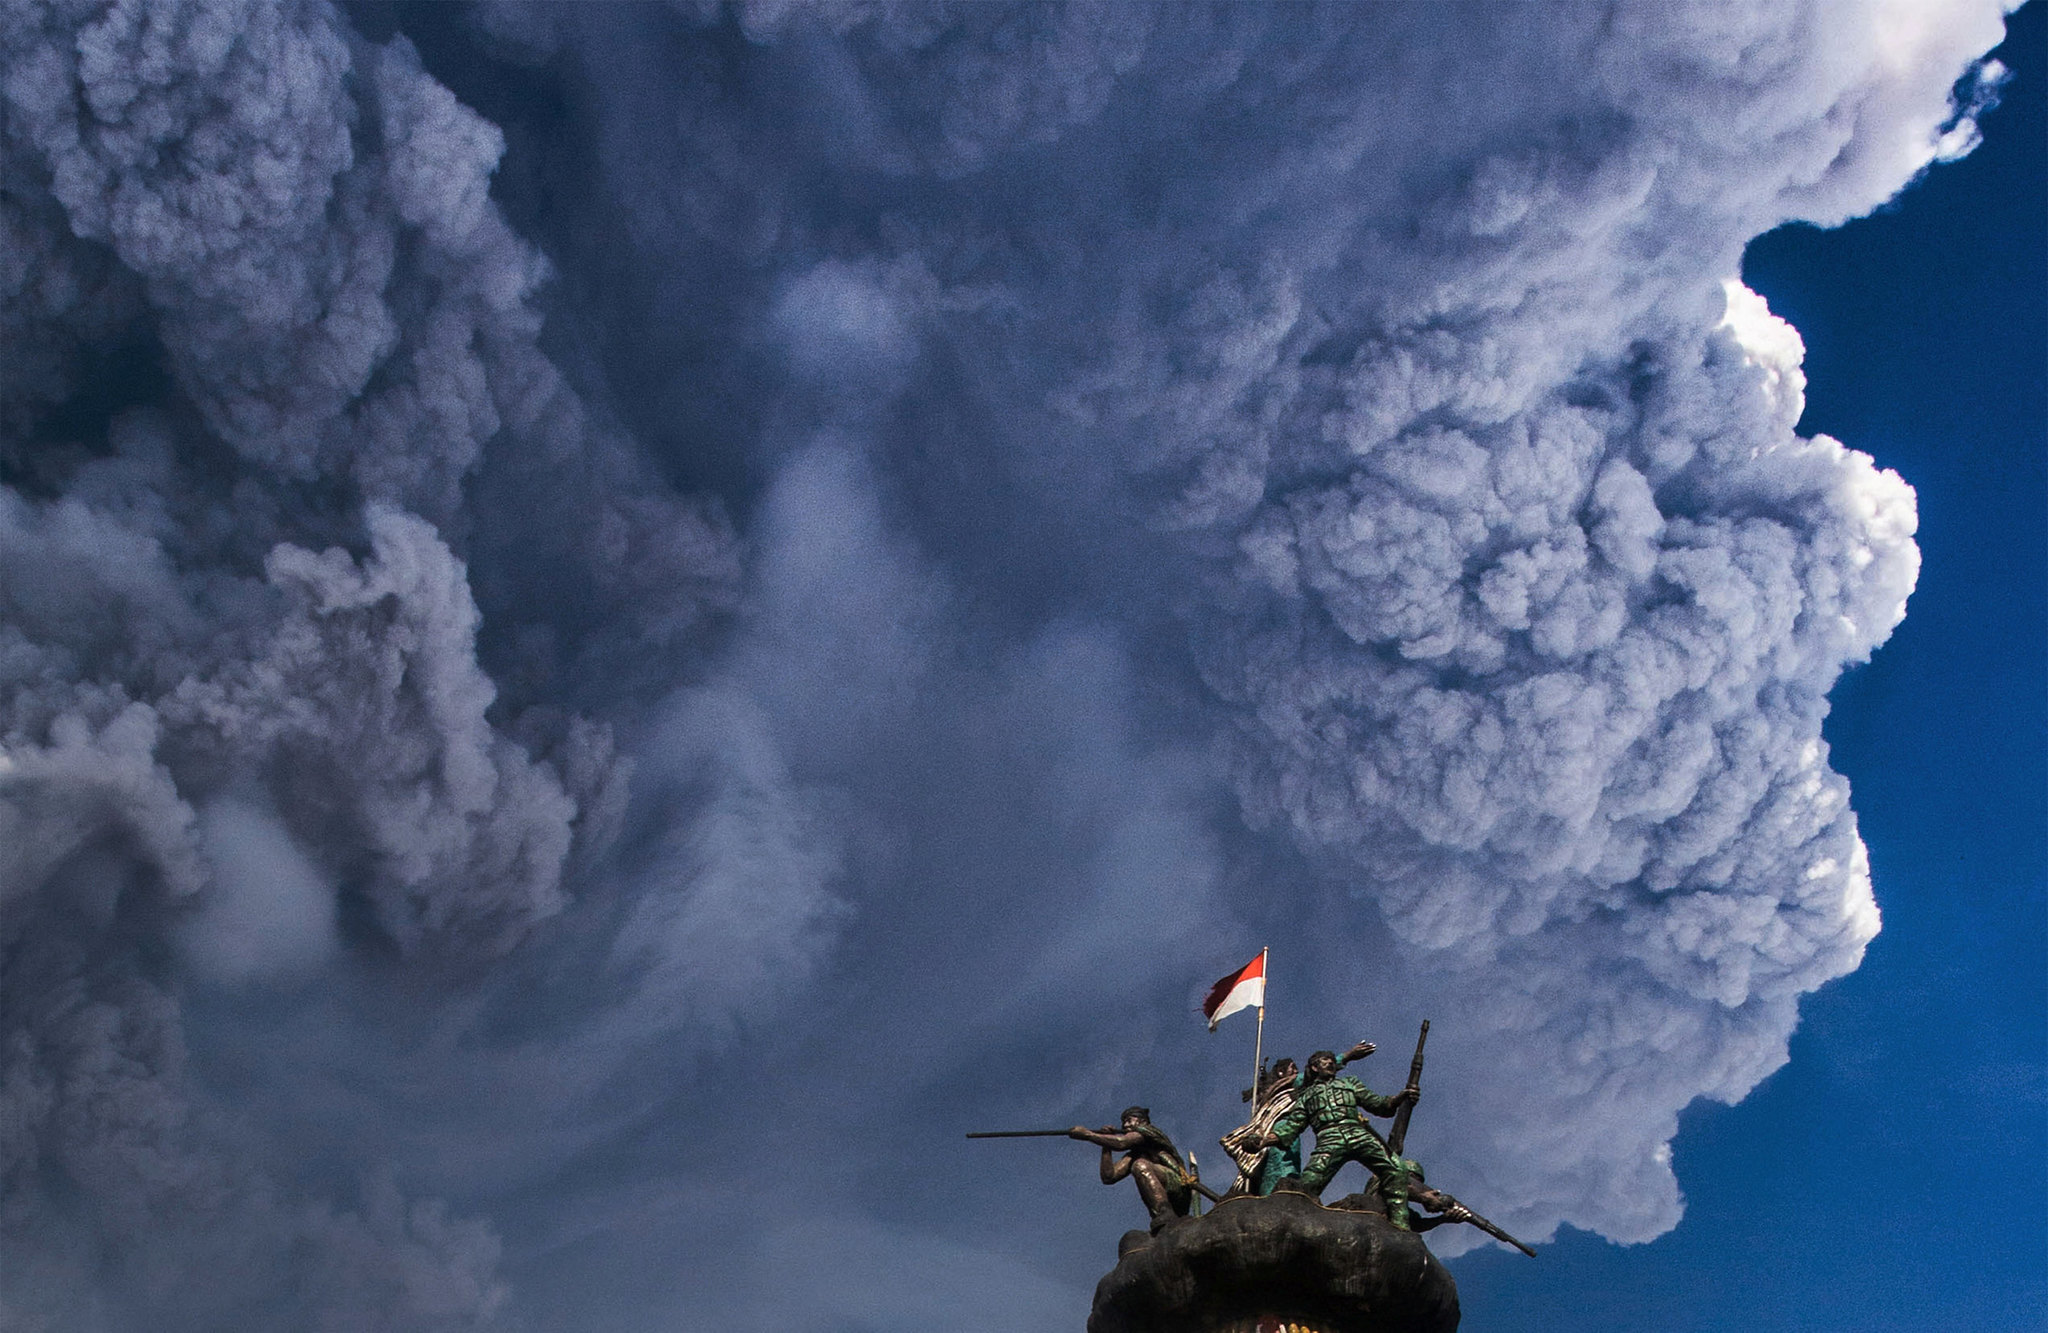 Mount Sinabung Volcano Erupts Again